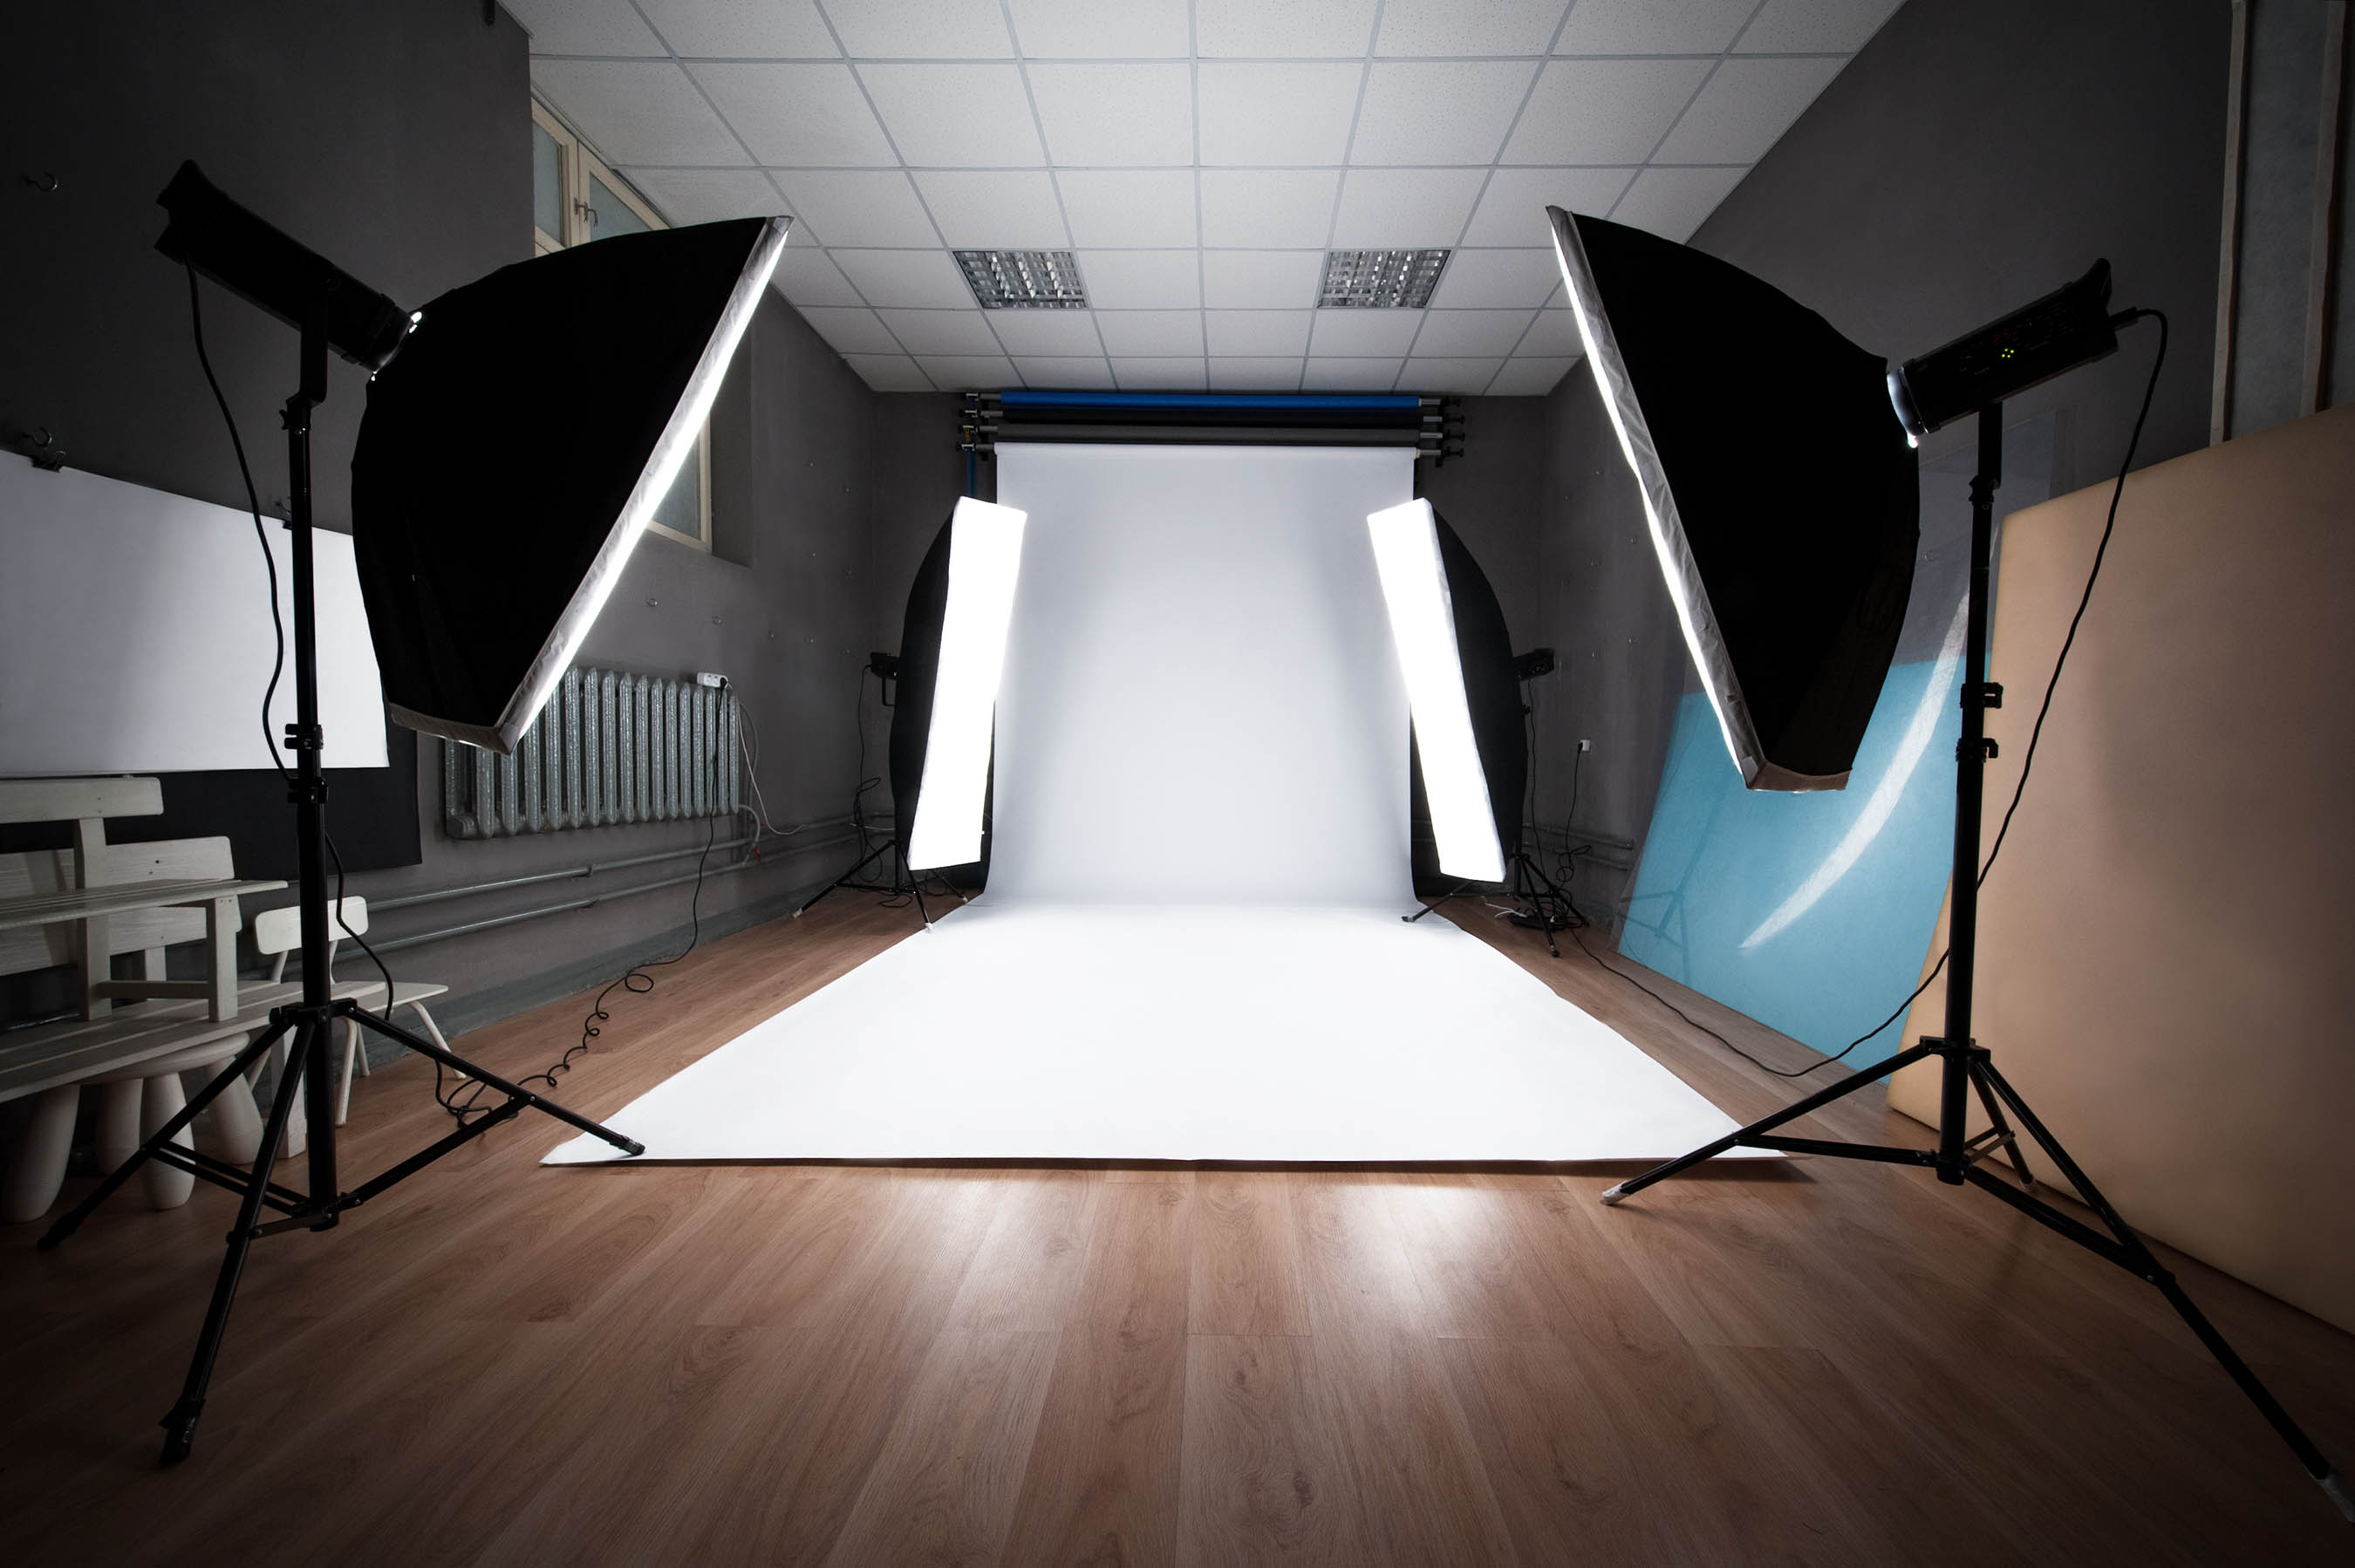 lighting-portrait-home-studio & Pro Lighting in the Home Studio- Super Pack/10 | Photography Schoolhouse